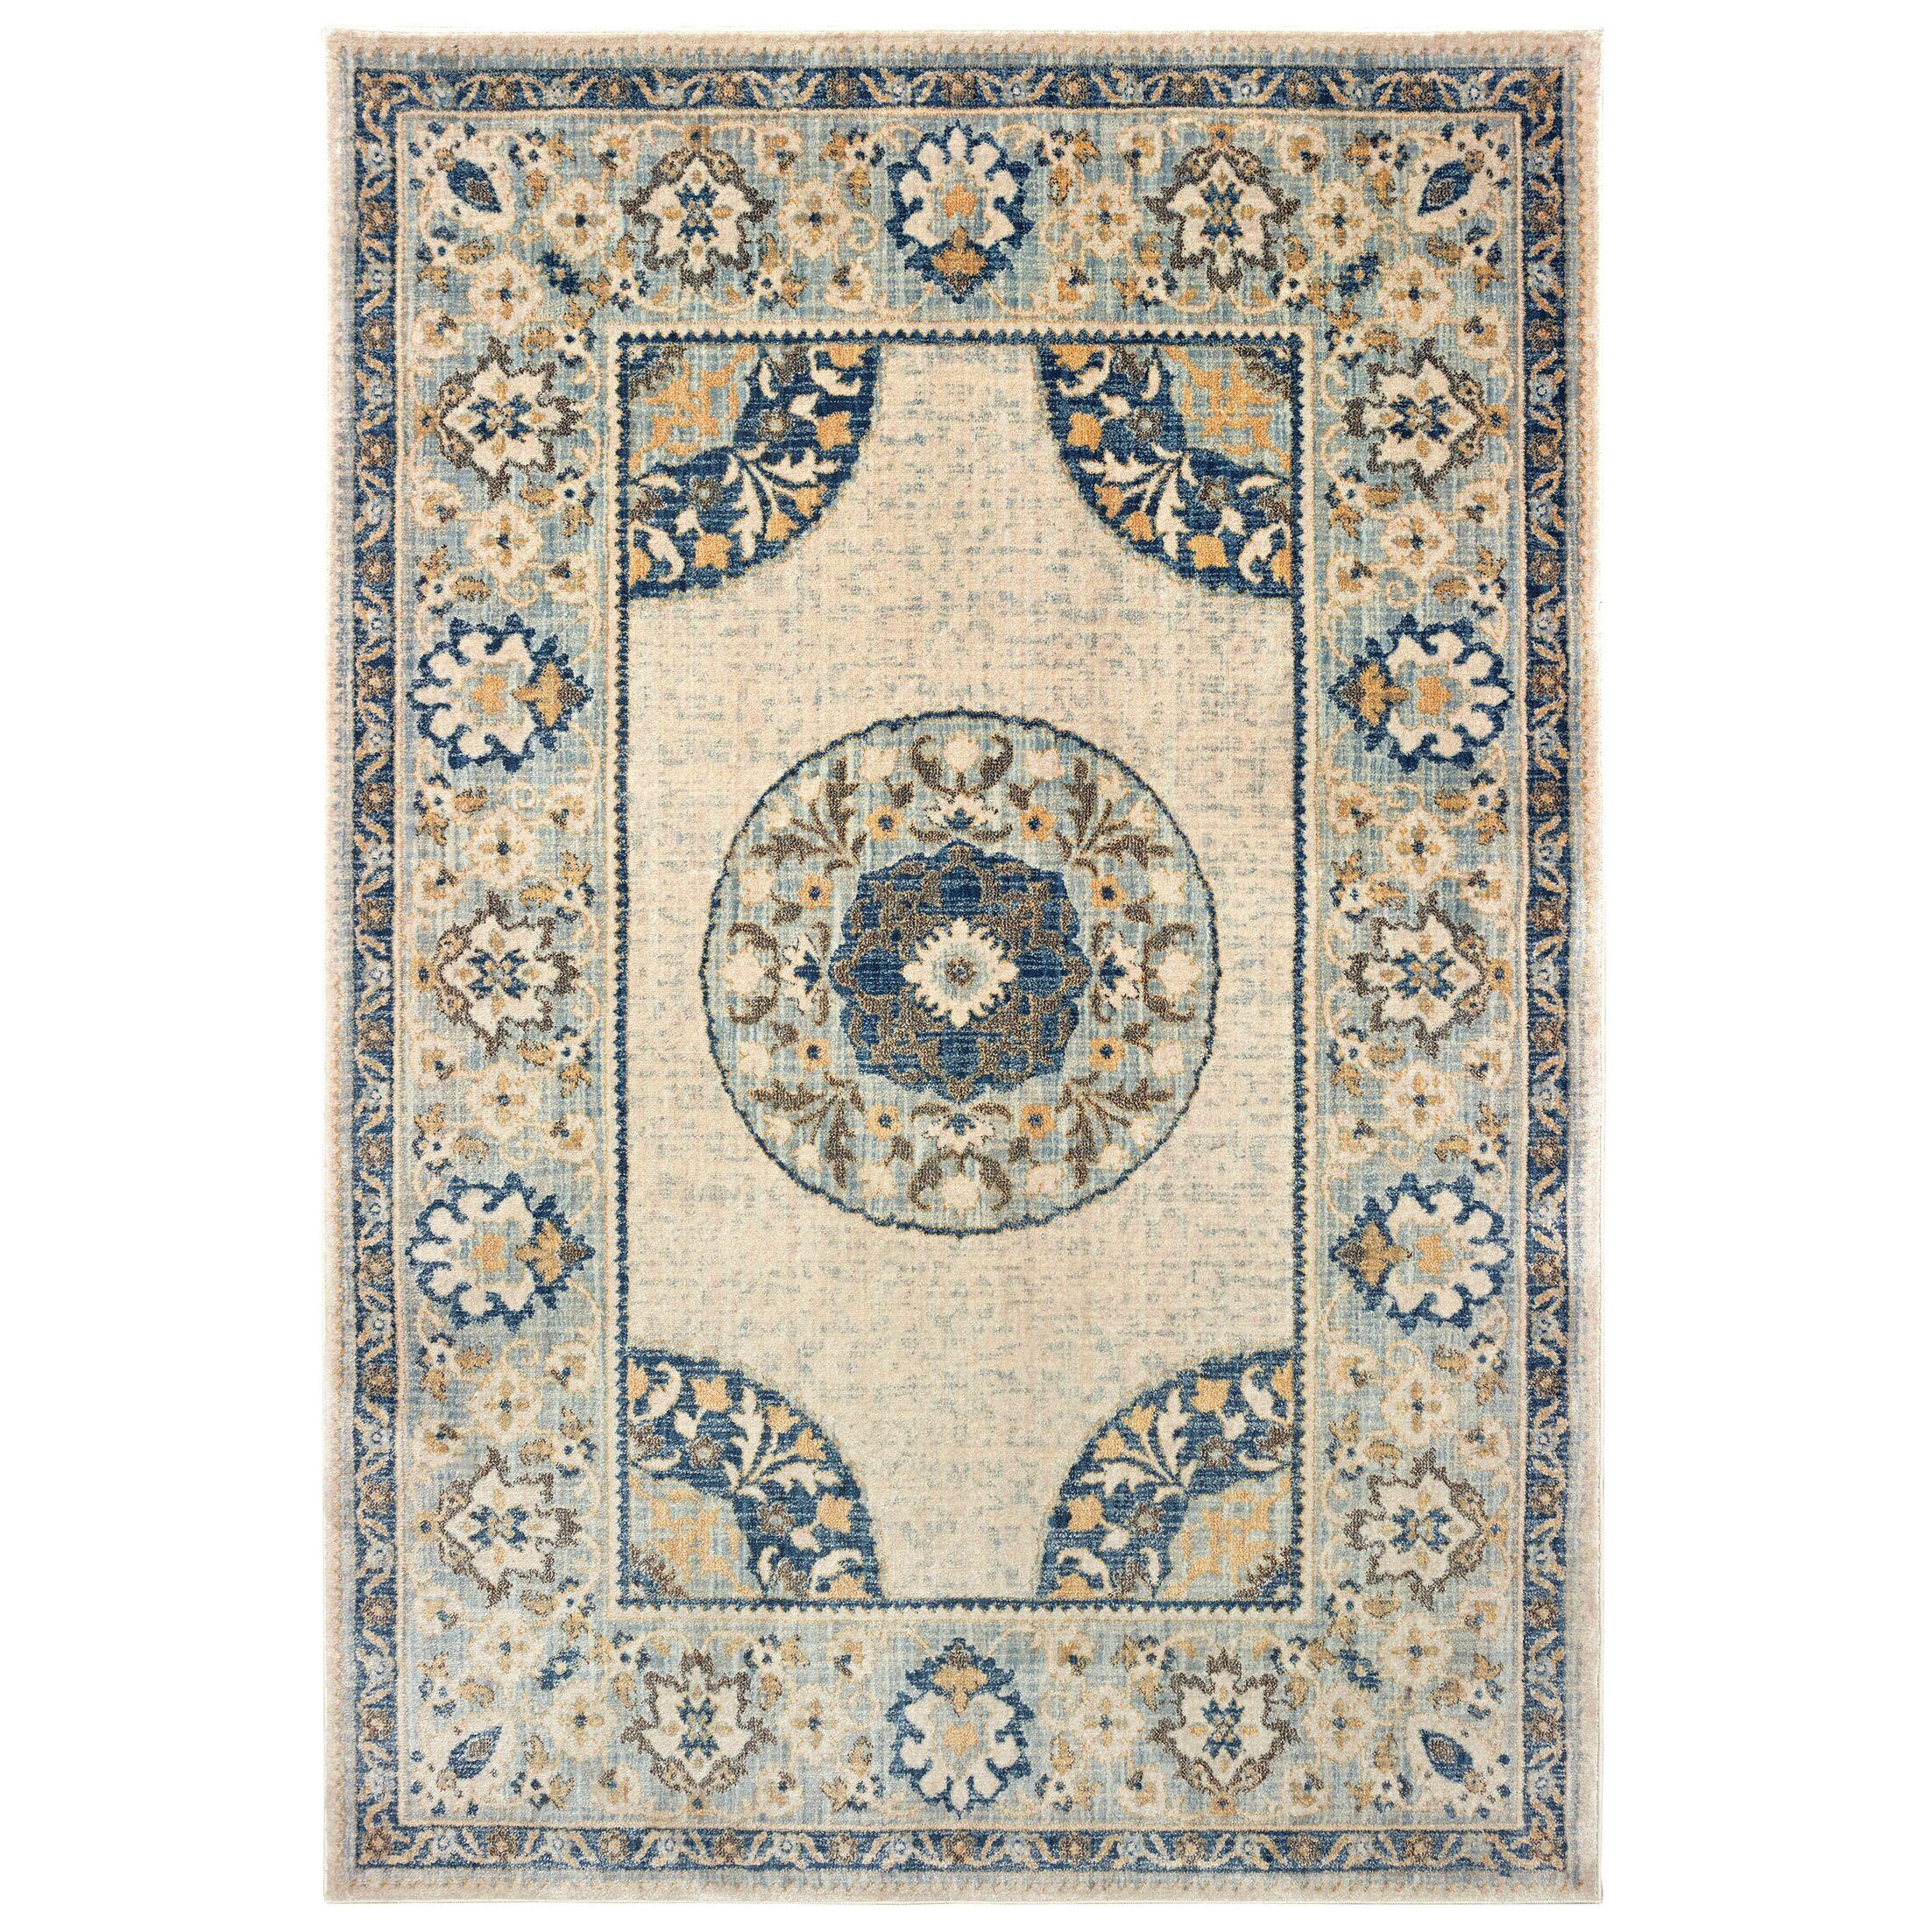 Pateros Floral Medallion Ivory/Blue Area Rug Rug Size: Rectangle 6'7